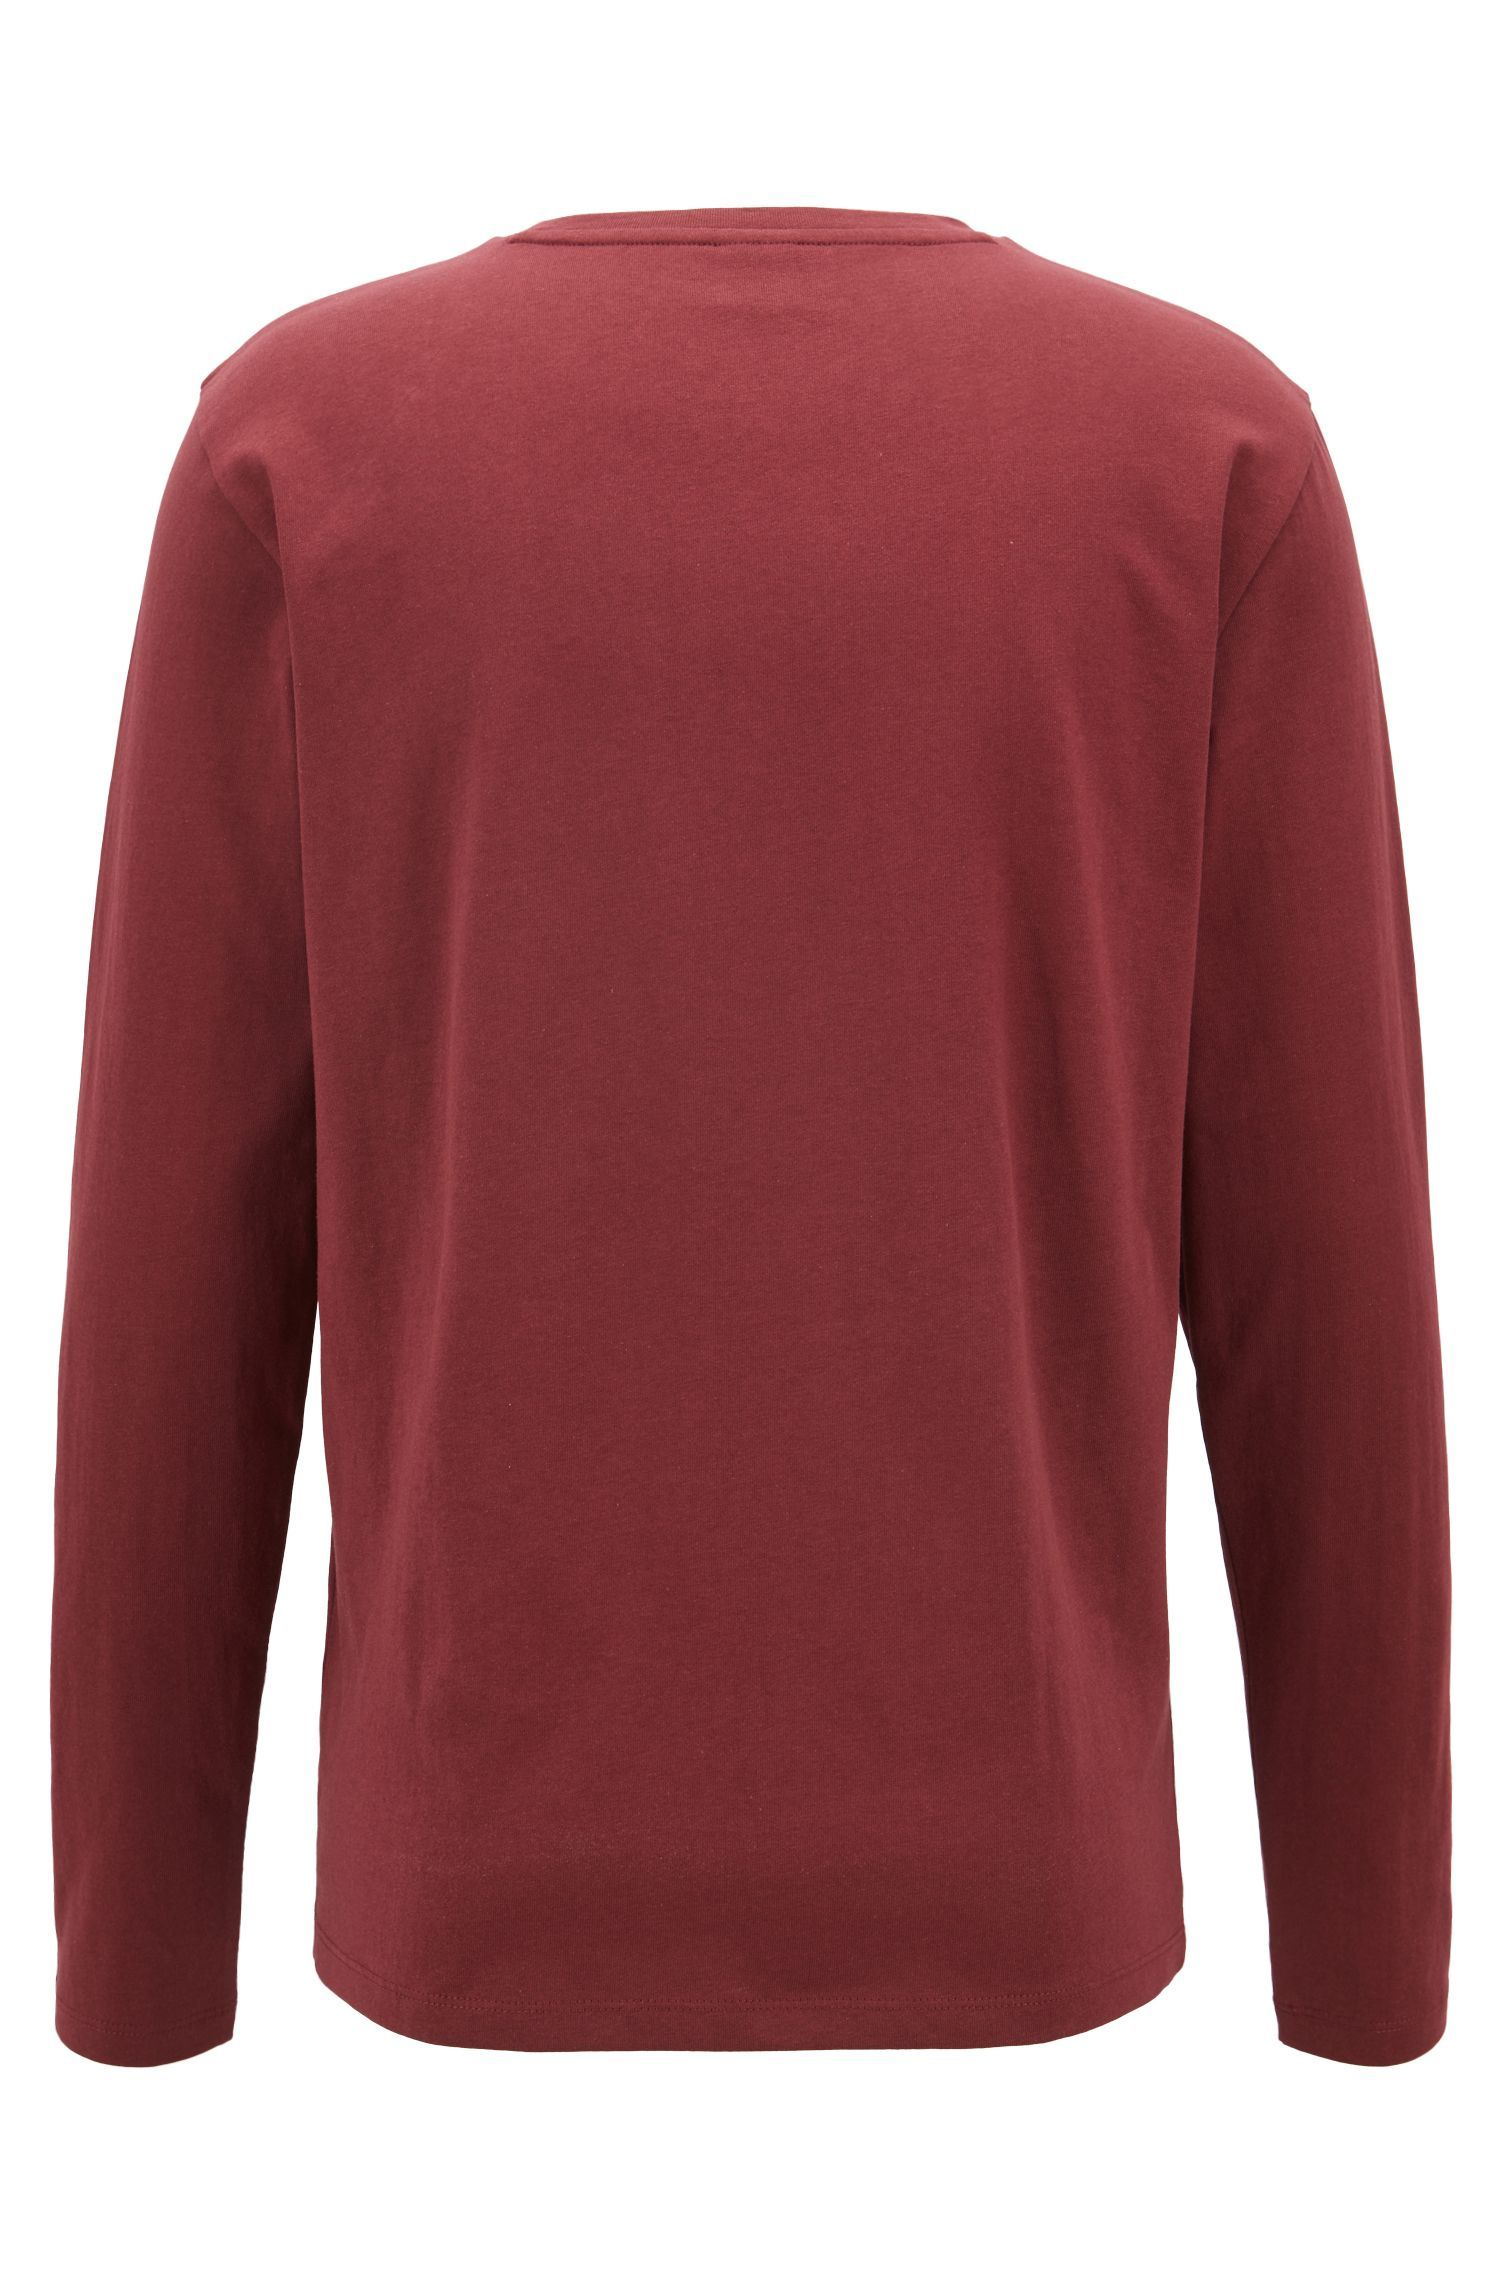 Long-sleeved T-shirt in washed single-jersey cotton, Dark Red